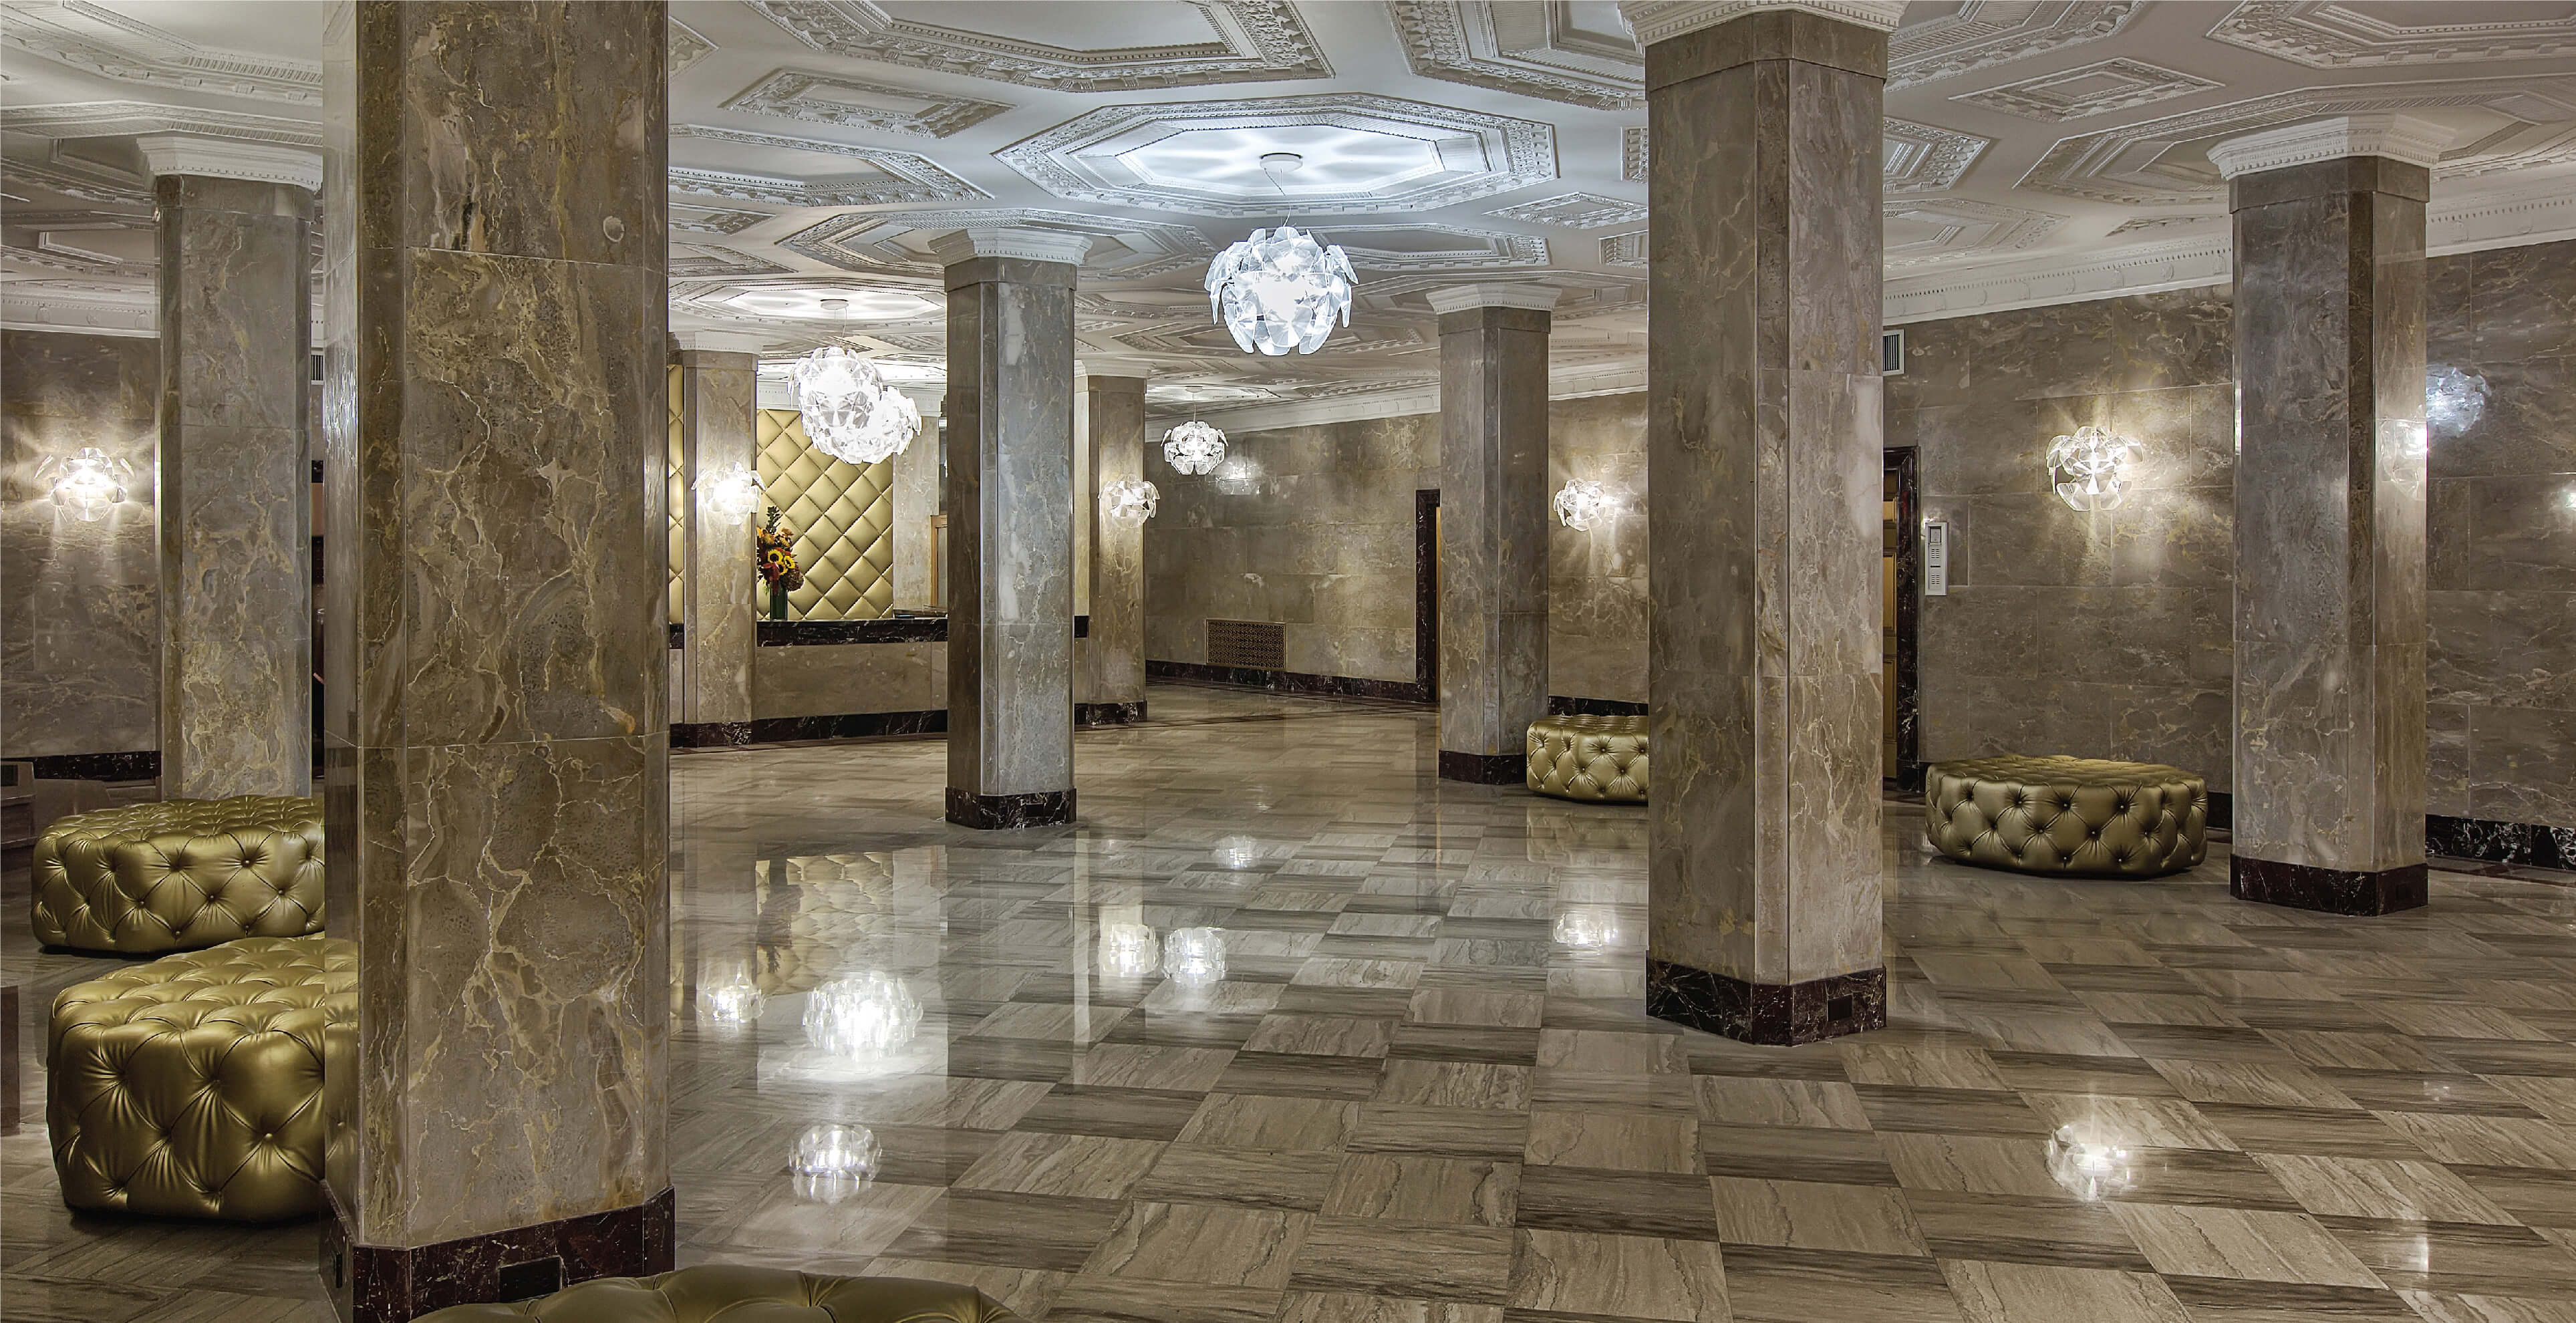 windermere building lobby image